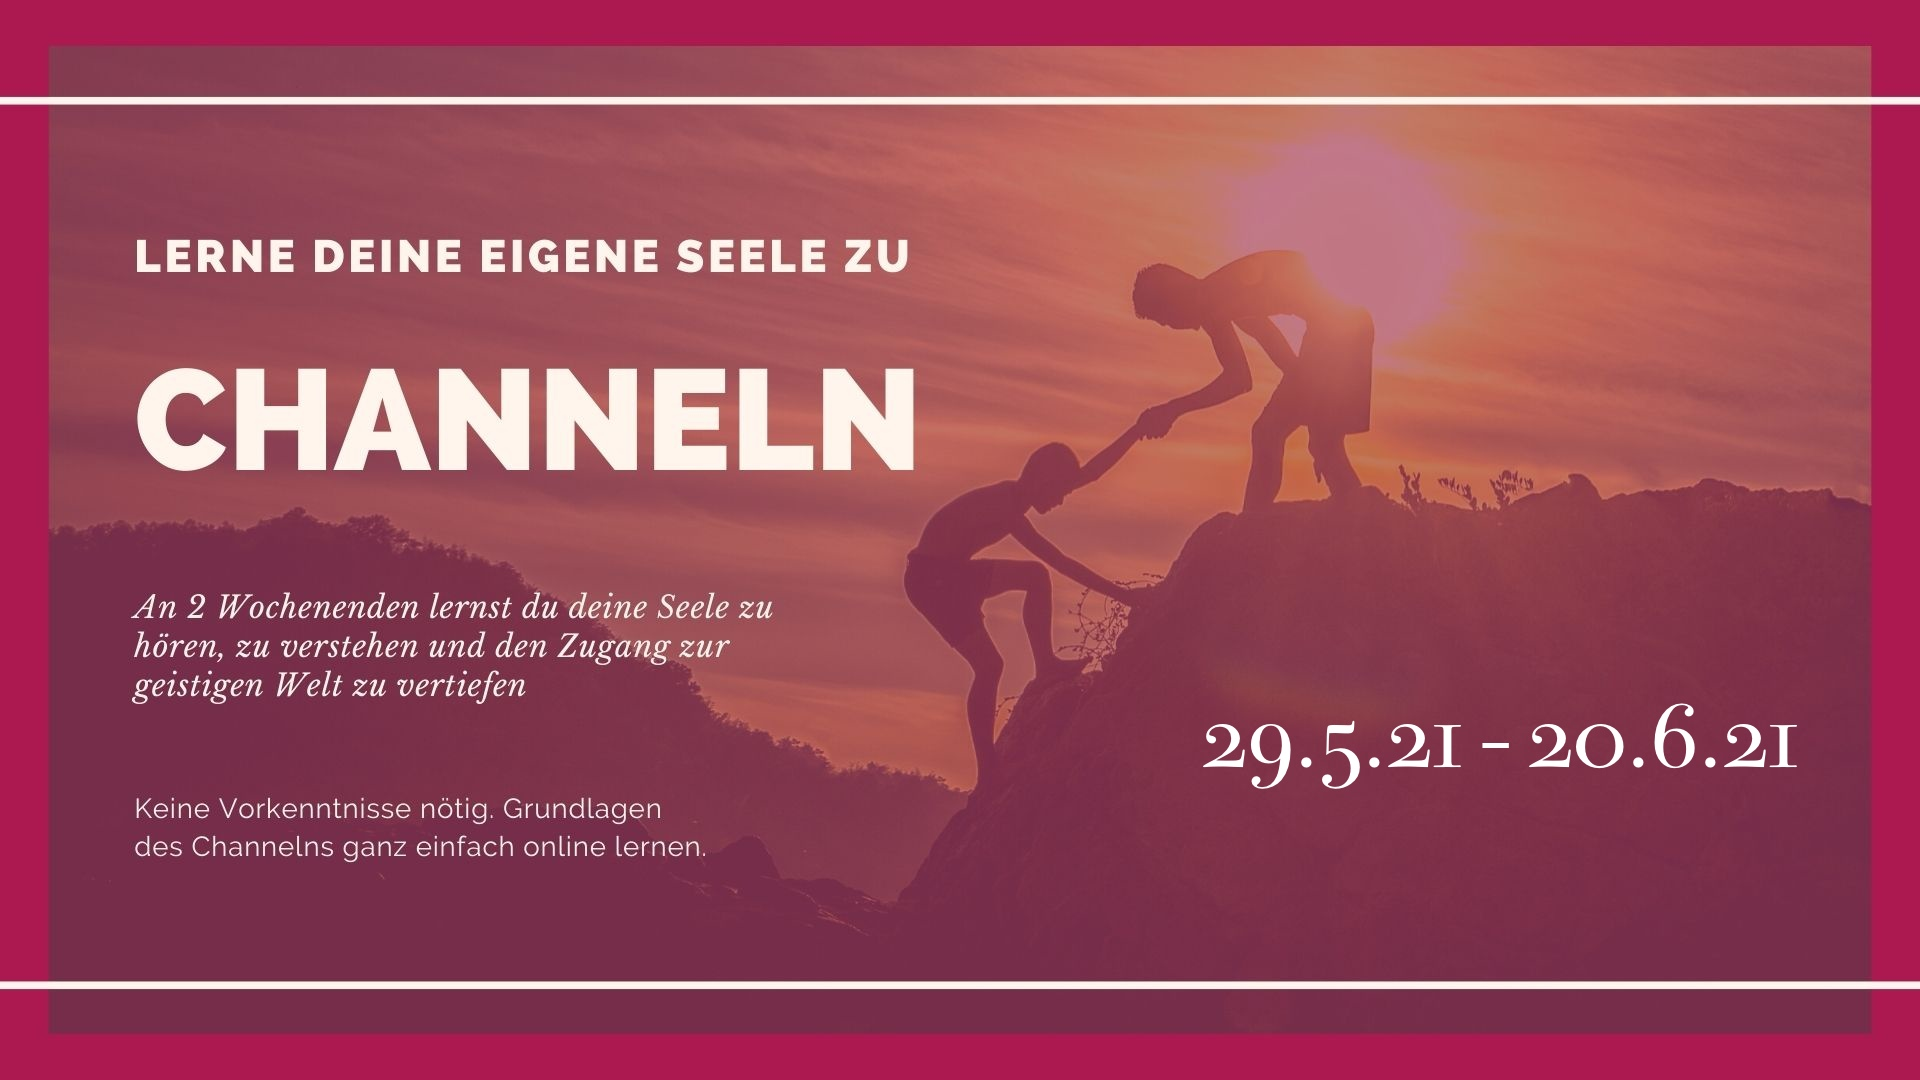 Channeln lernen Module 1-2 Basic Kurs: https://sabrinas.academy/events/channeln-lernen-basic-modul-1-2/